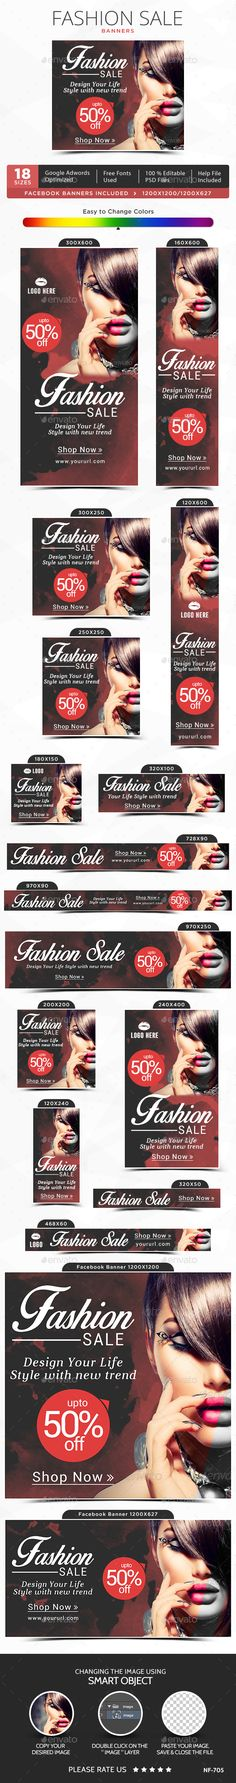 Fashion Sale web Banners Template PSD #design #ads Download: http://graphicriver.net/item/fashion-sale-banners/13185632?ref=ksioks